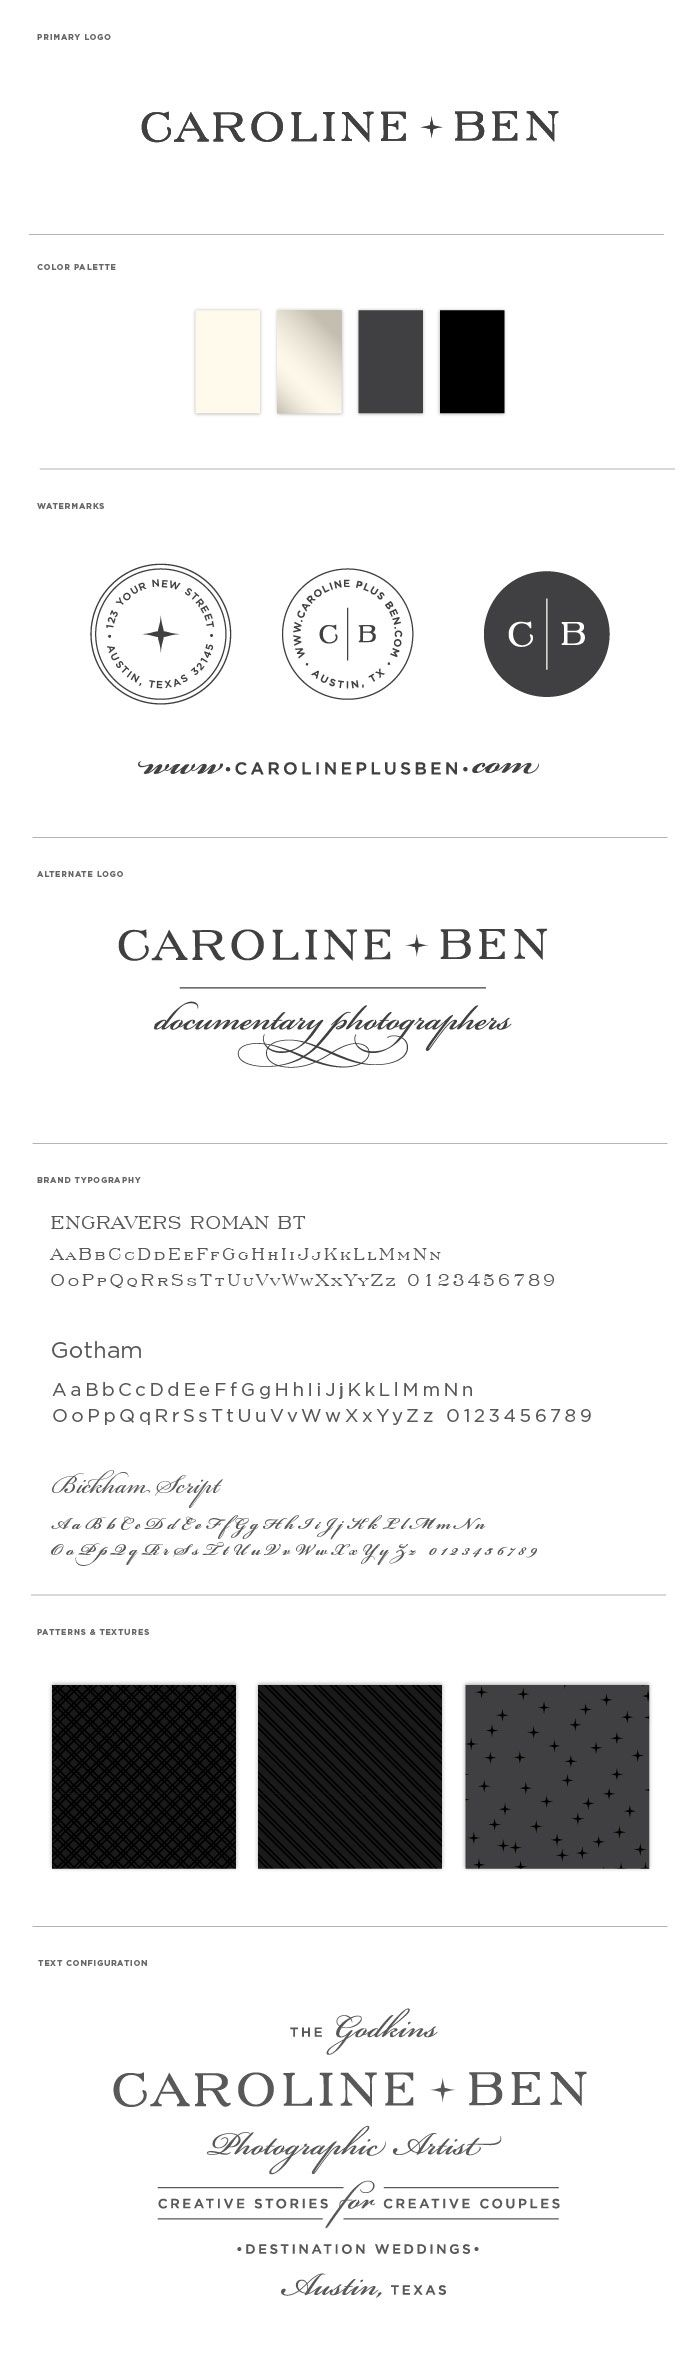 found by hedviggen ⚓️ on pinterest | ci & packaging | fonts | gfx | personalized | paper | craft | design | business card | Logo Design | branding | Brand Board | Web Design | corporate identity | brand identity | inspiration One Plus One • Caroline Plus Ben